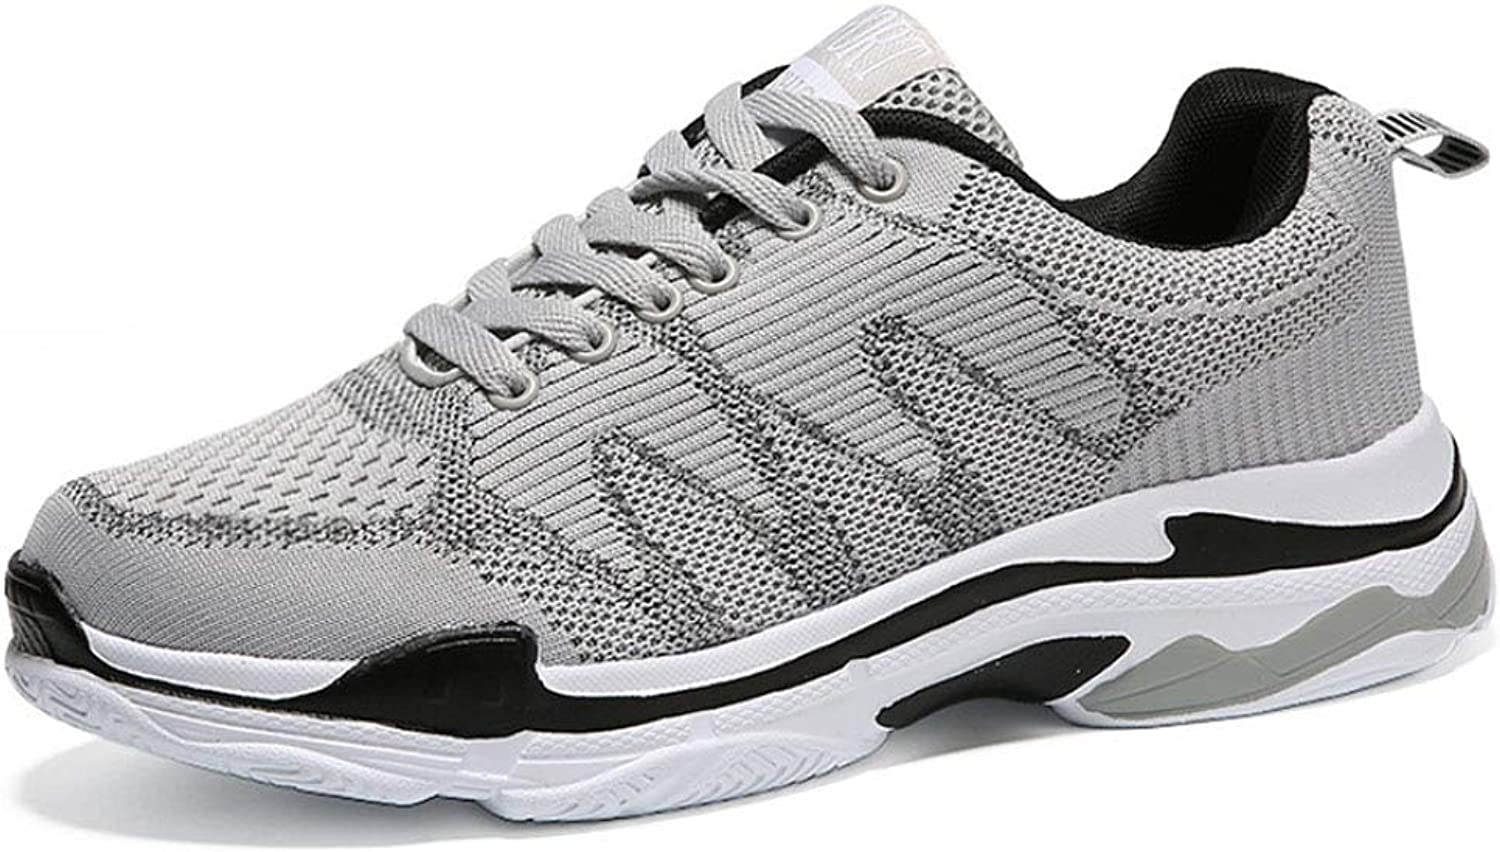 Flying Woven shoes, Sneakers, Casual Sneakers, Summer, Men and Women, Couples, Running shoes